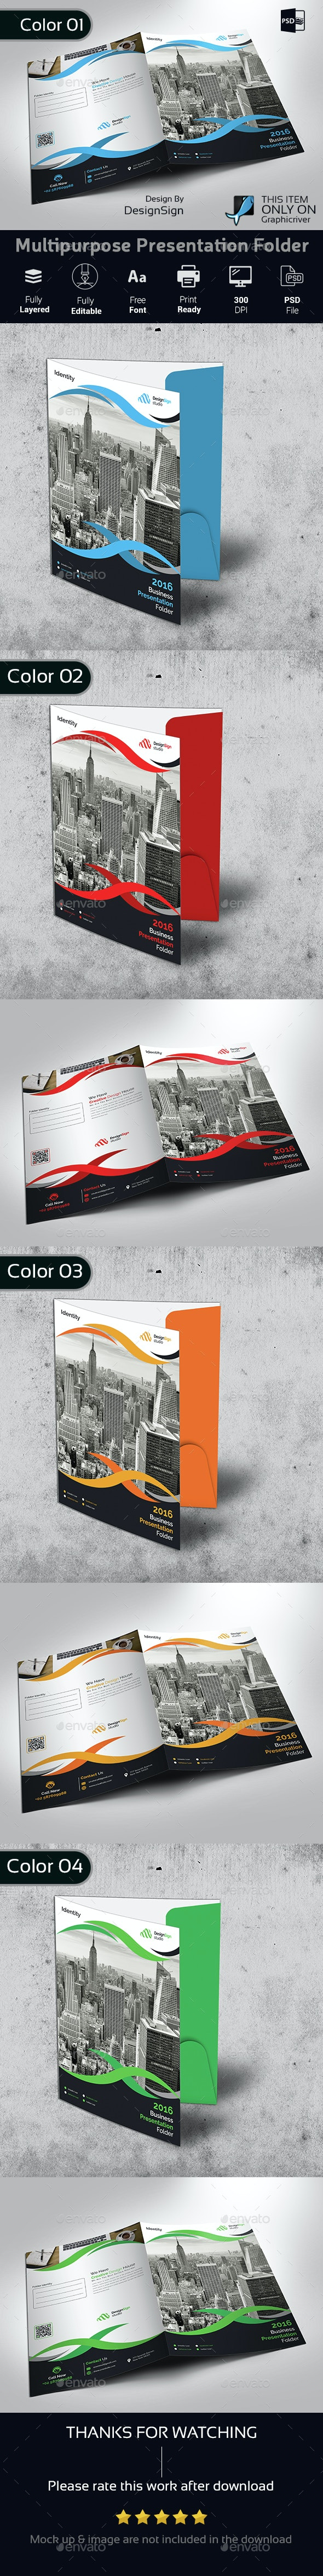 Multipurpose Business Presentation Folder - Stationery Print Templates